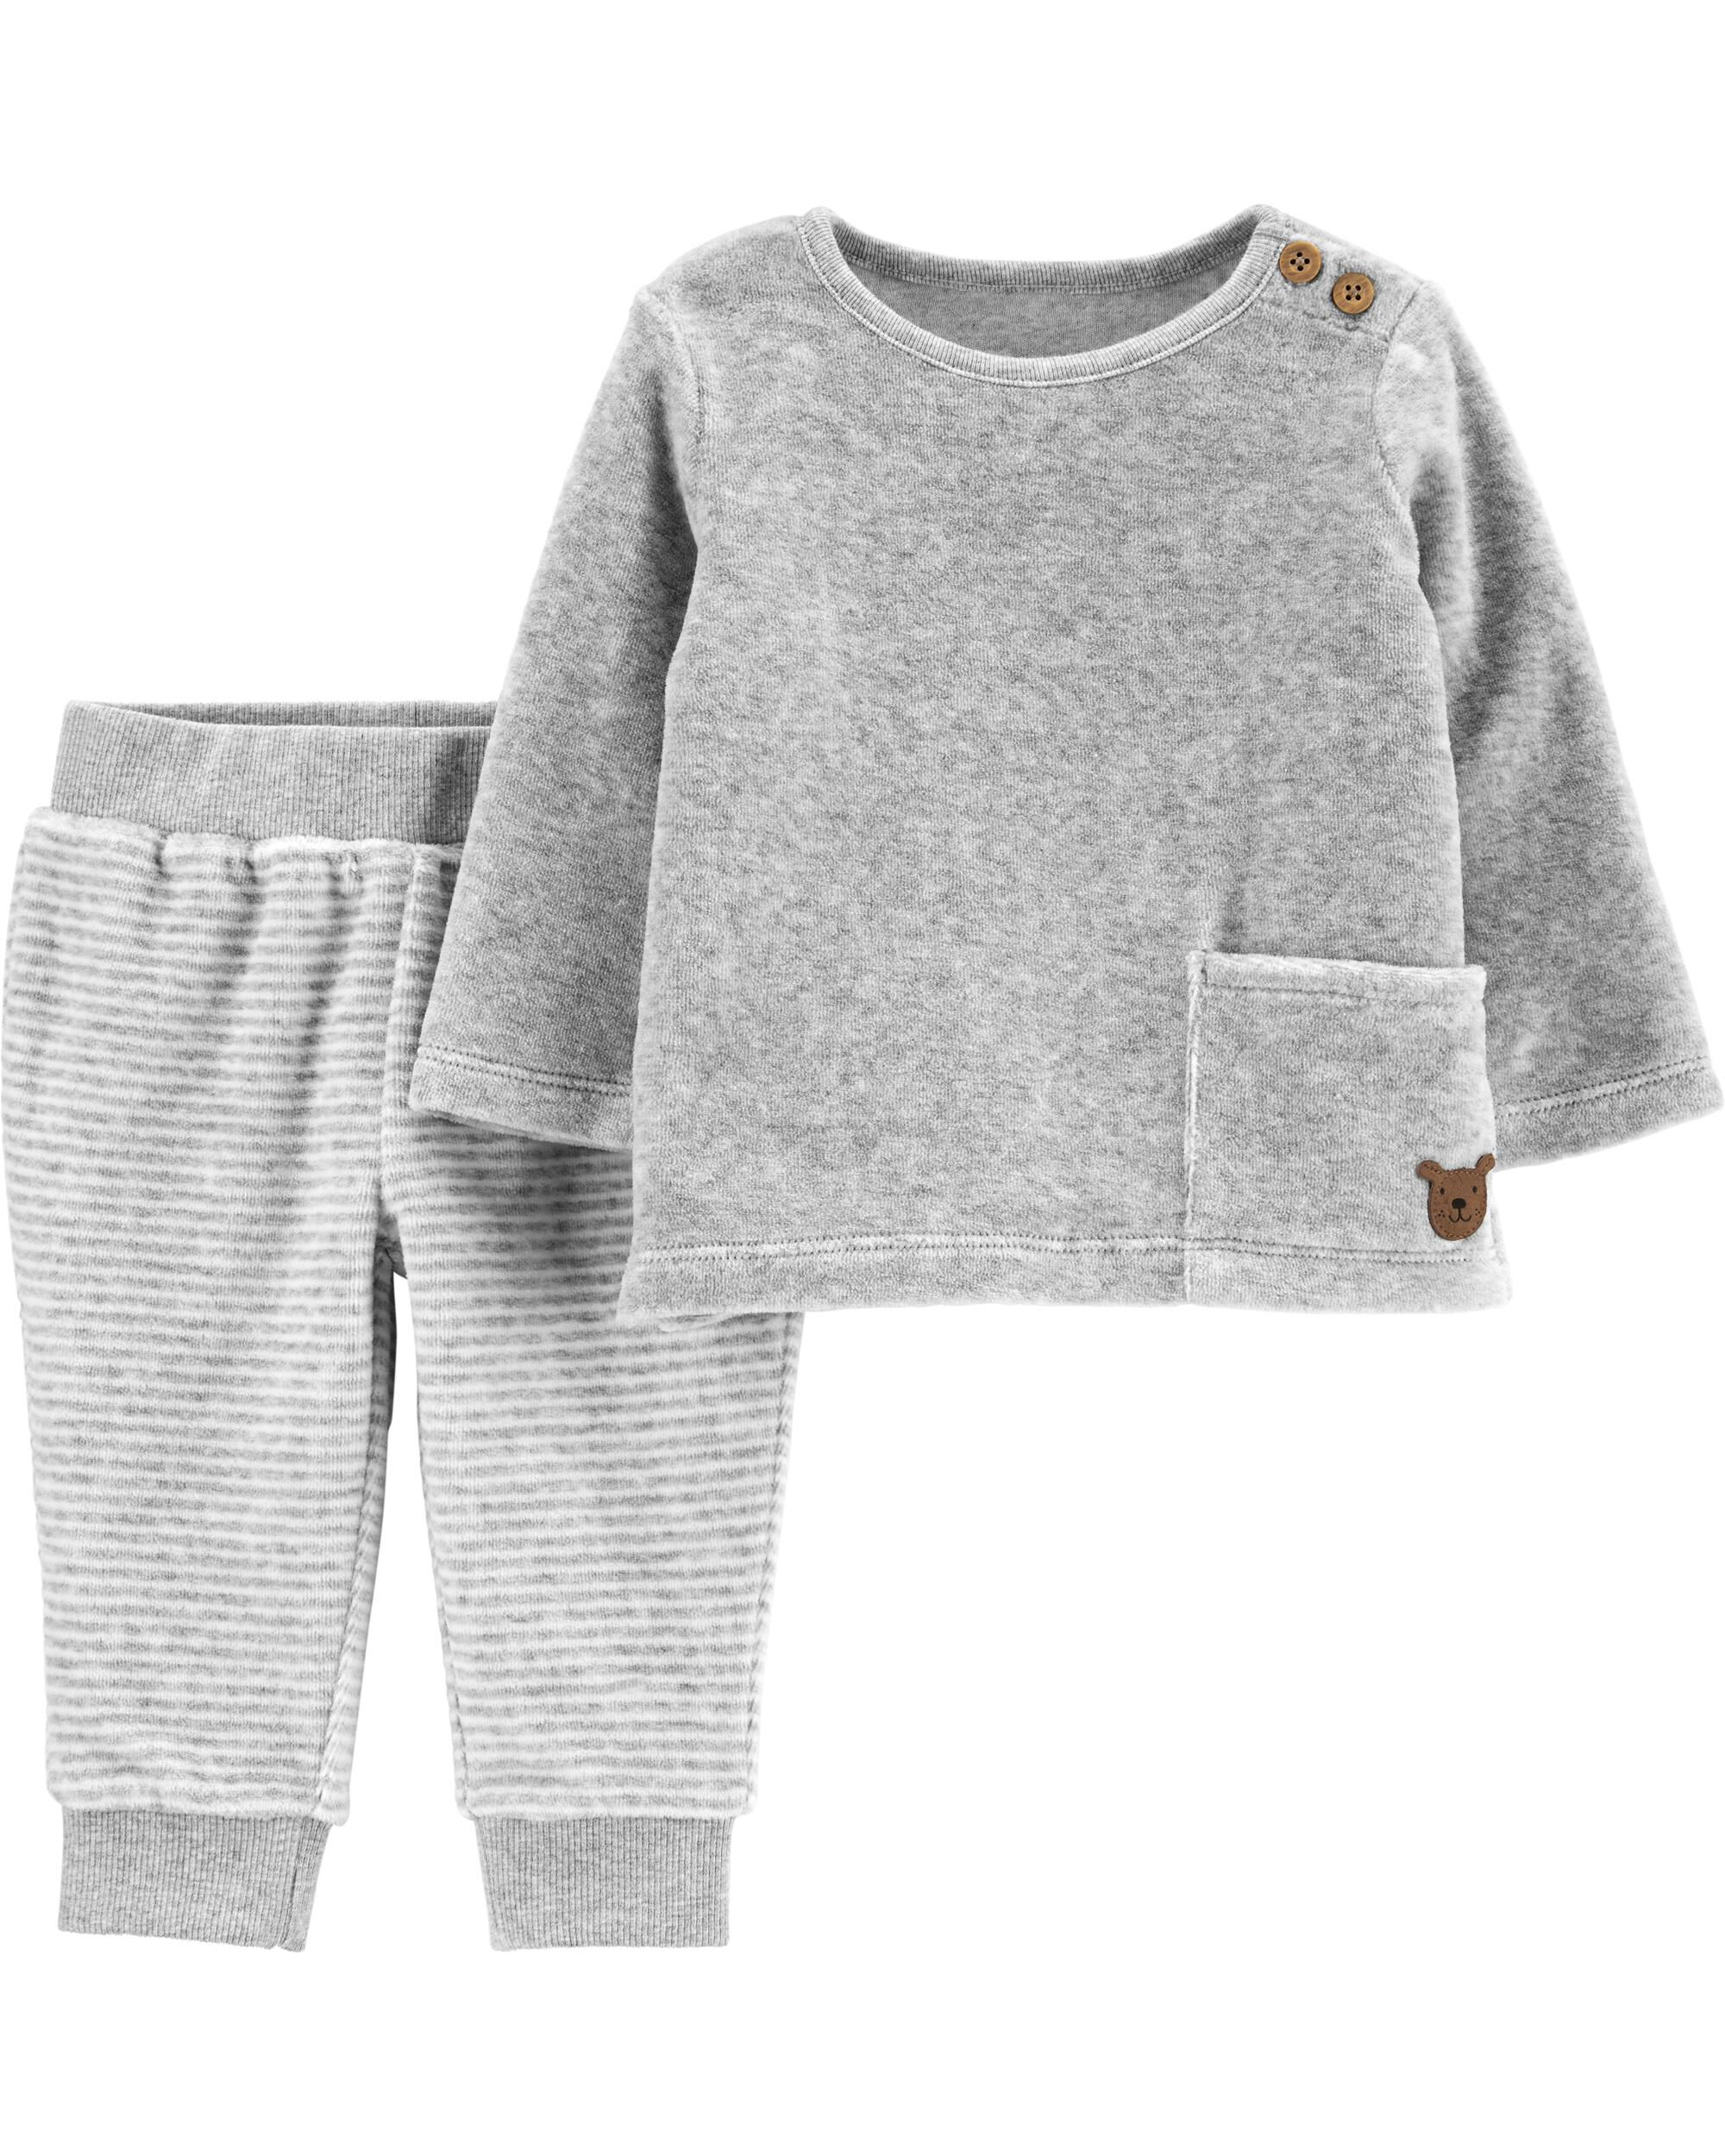 *CLEARANCE* 2-Piece Velour Top & Striped Pant Set